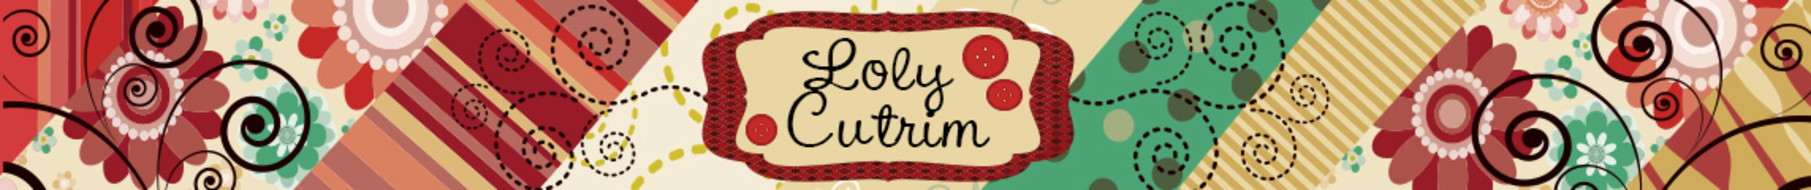 Loly Cutrim